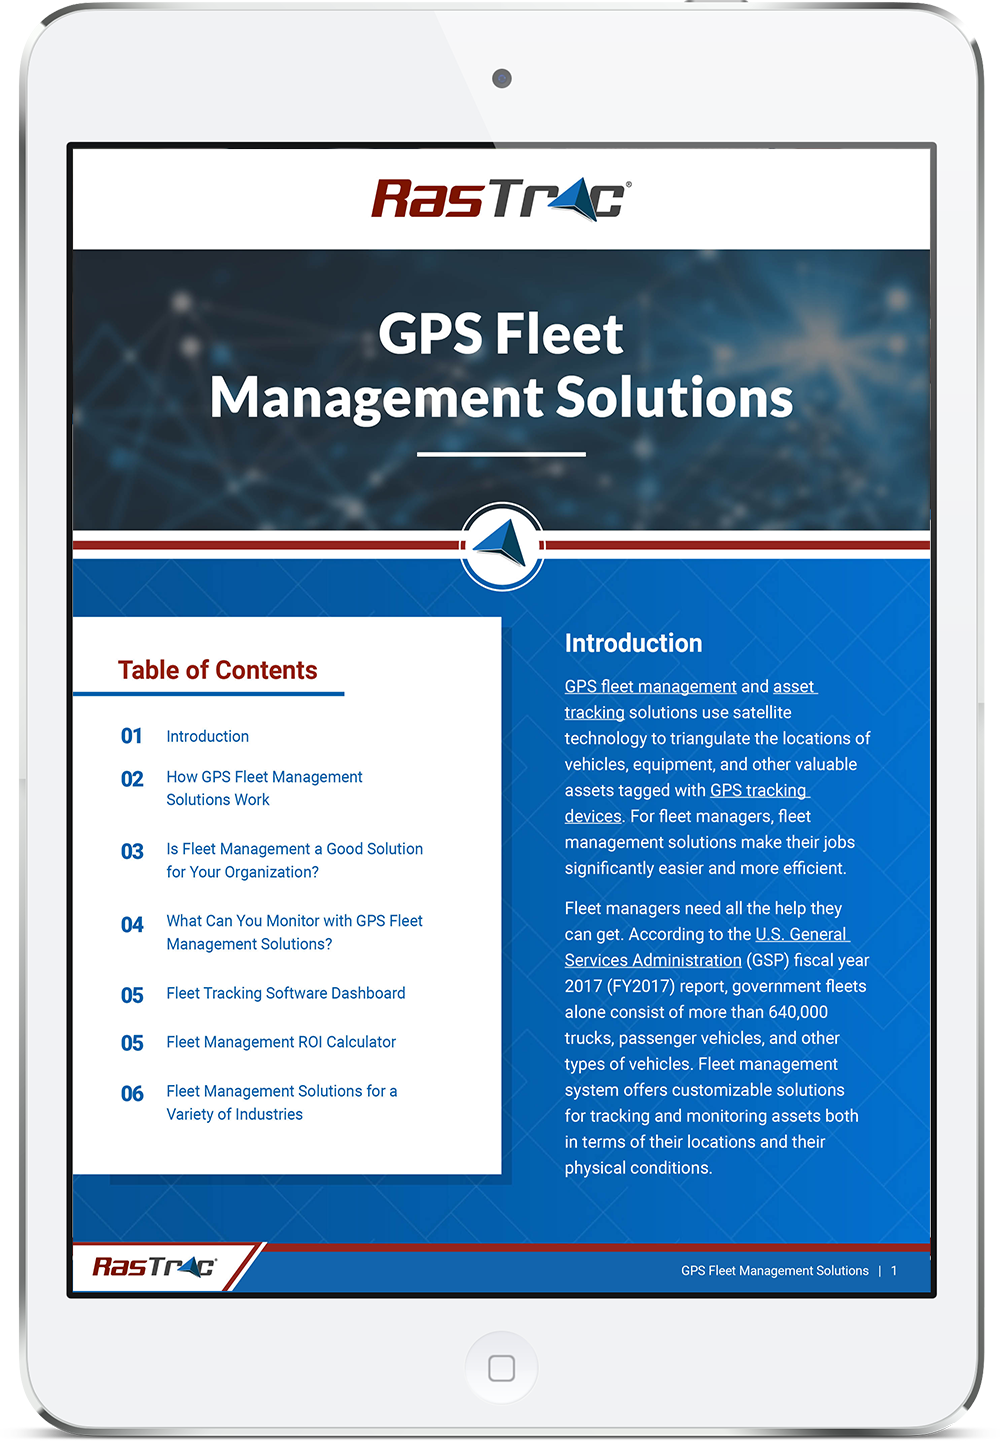 GPS Fleet Management Solutions Guide Cover